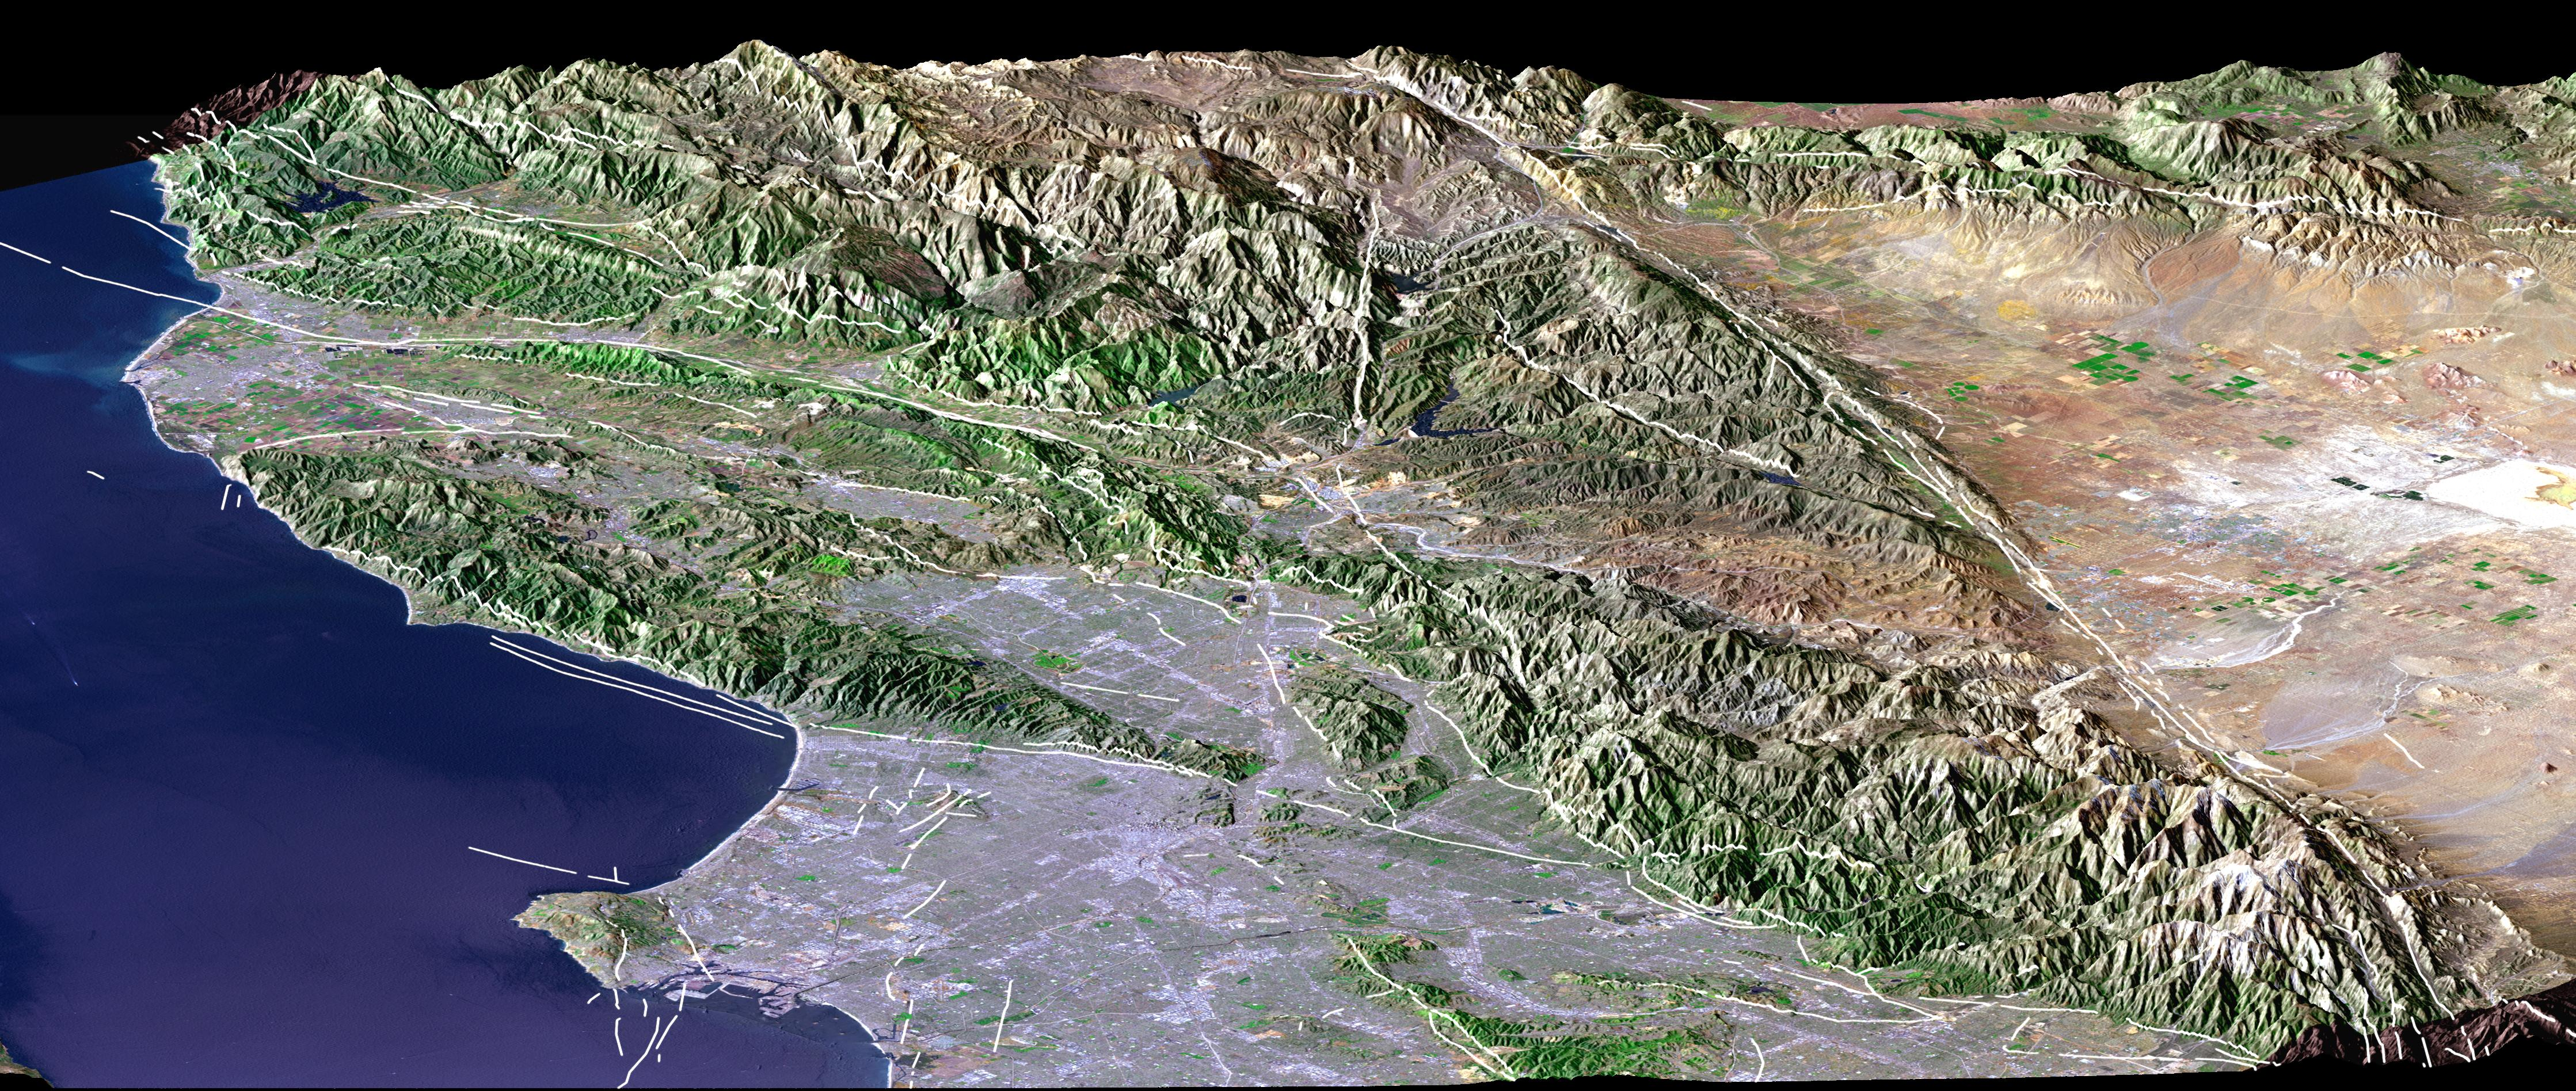 Los Angeles Faults Image of the